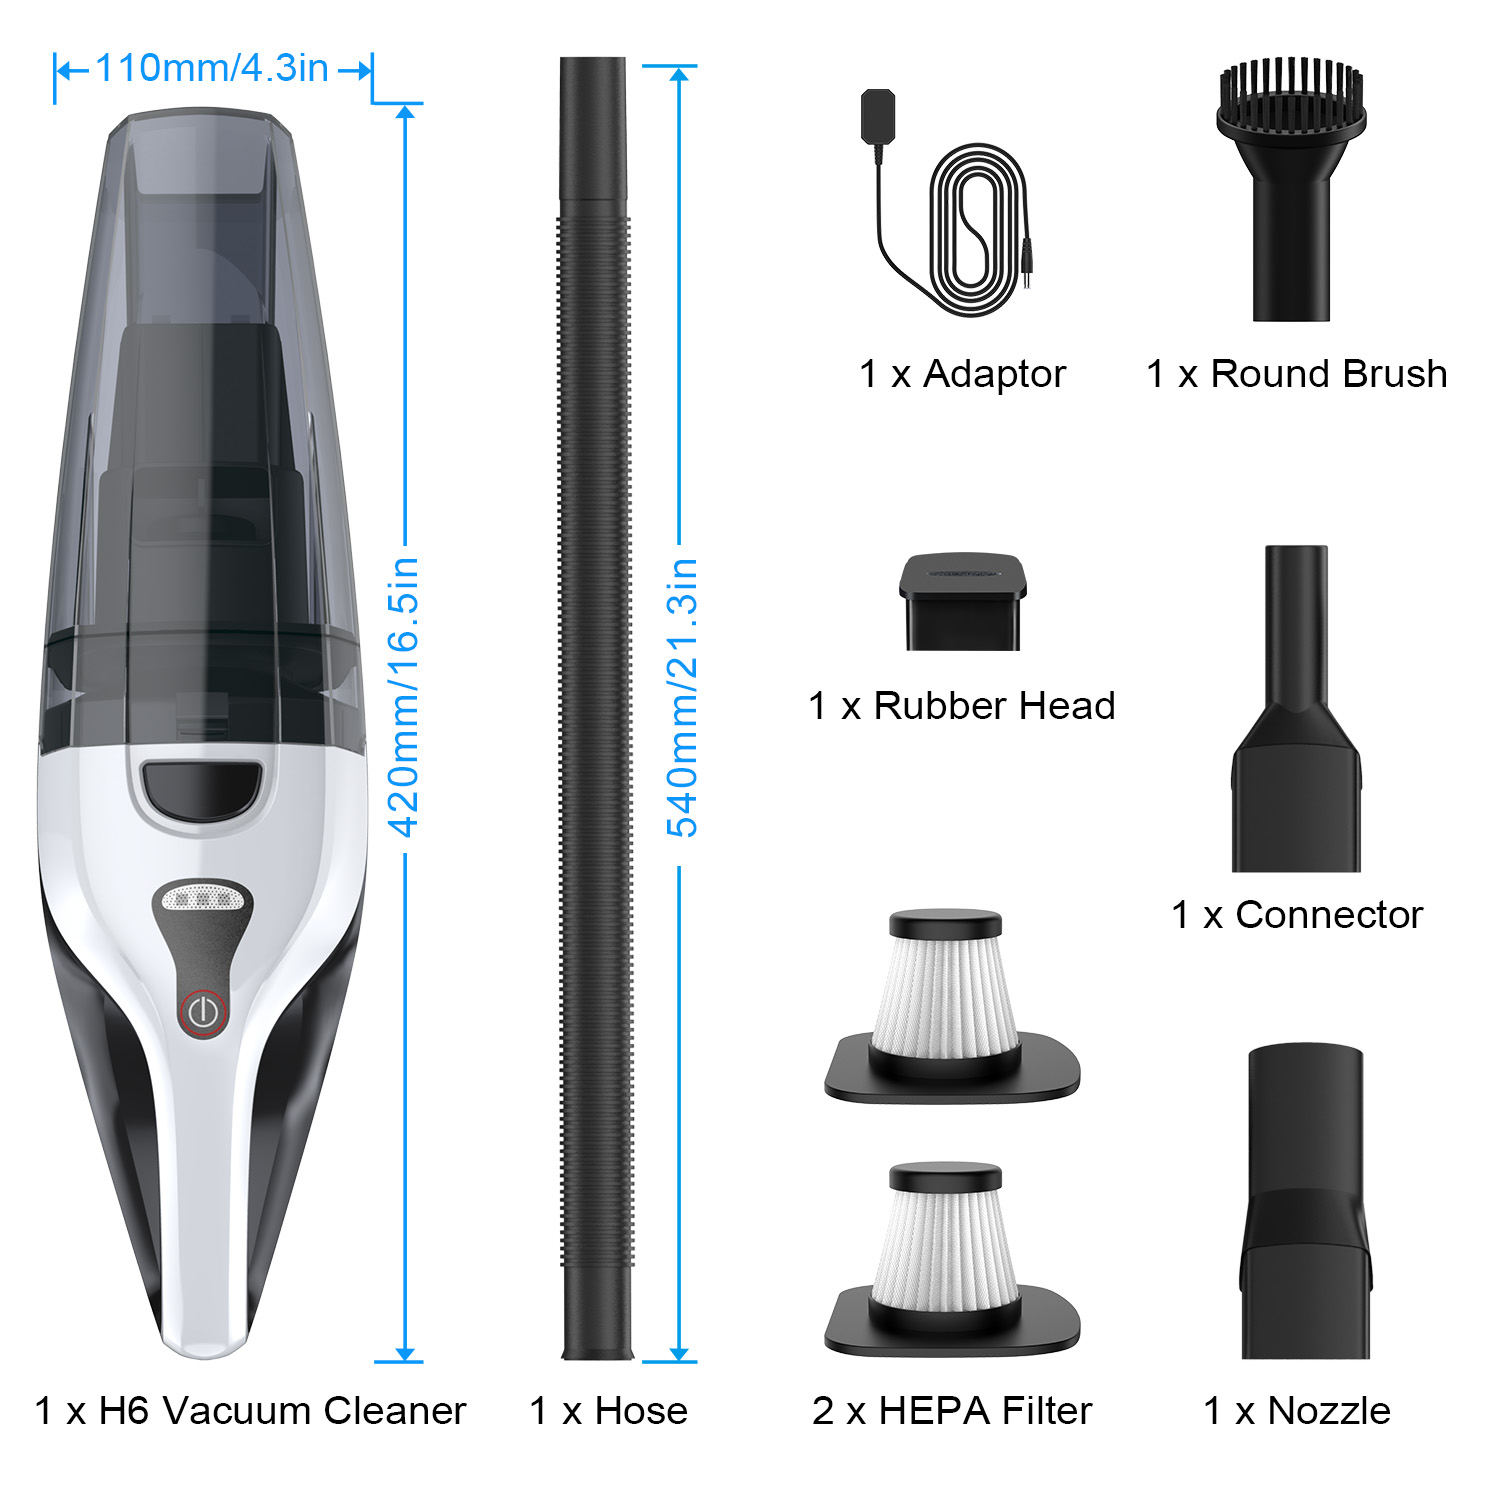 Alfawise H6S 14.8V Powerful Suction Portable Vacuum Cleaner for House & Car - Multi-A